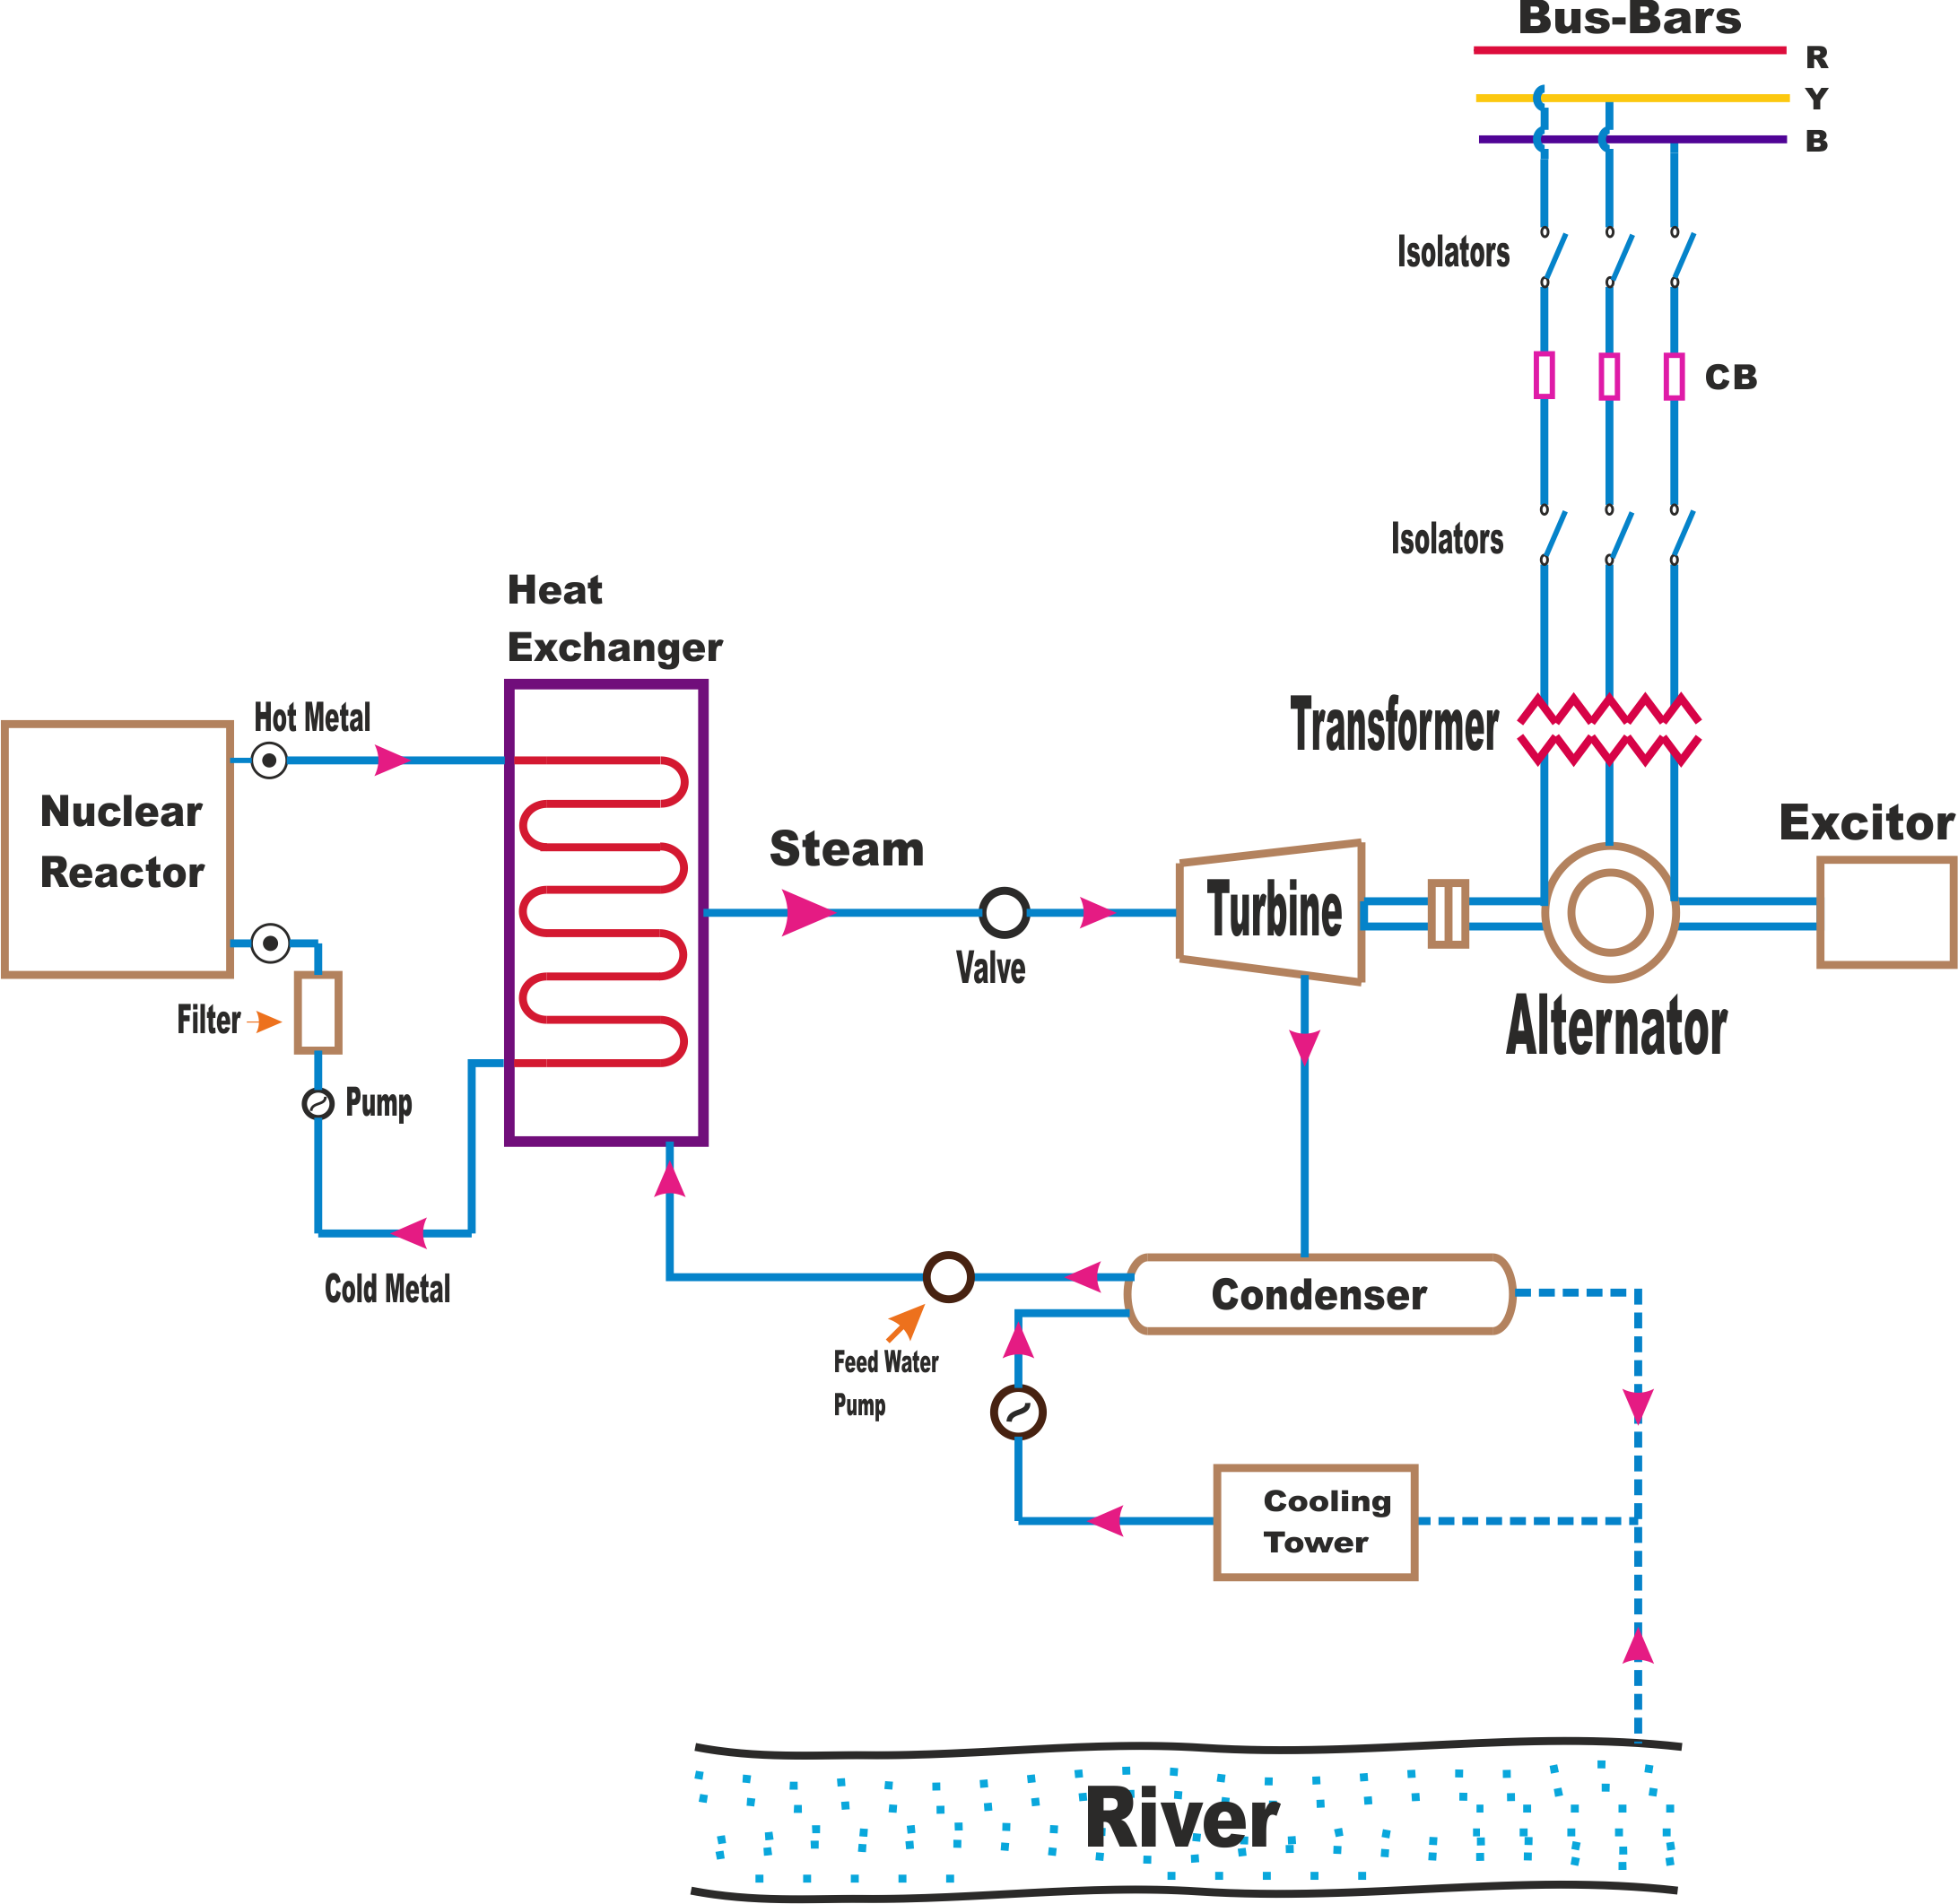 biomass power plant flow diagram diesel power plant flow diagram diesel power plant flow diagram | wiring library #2